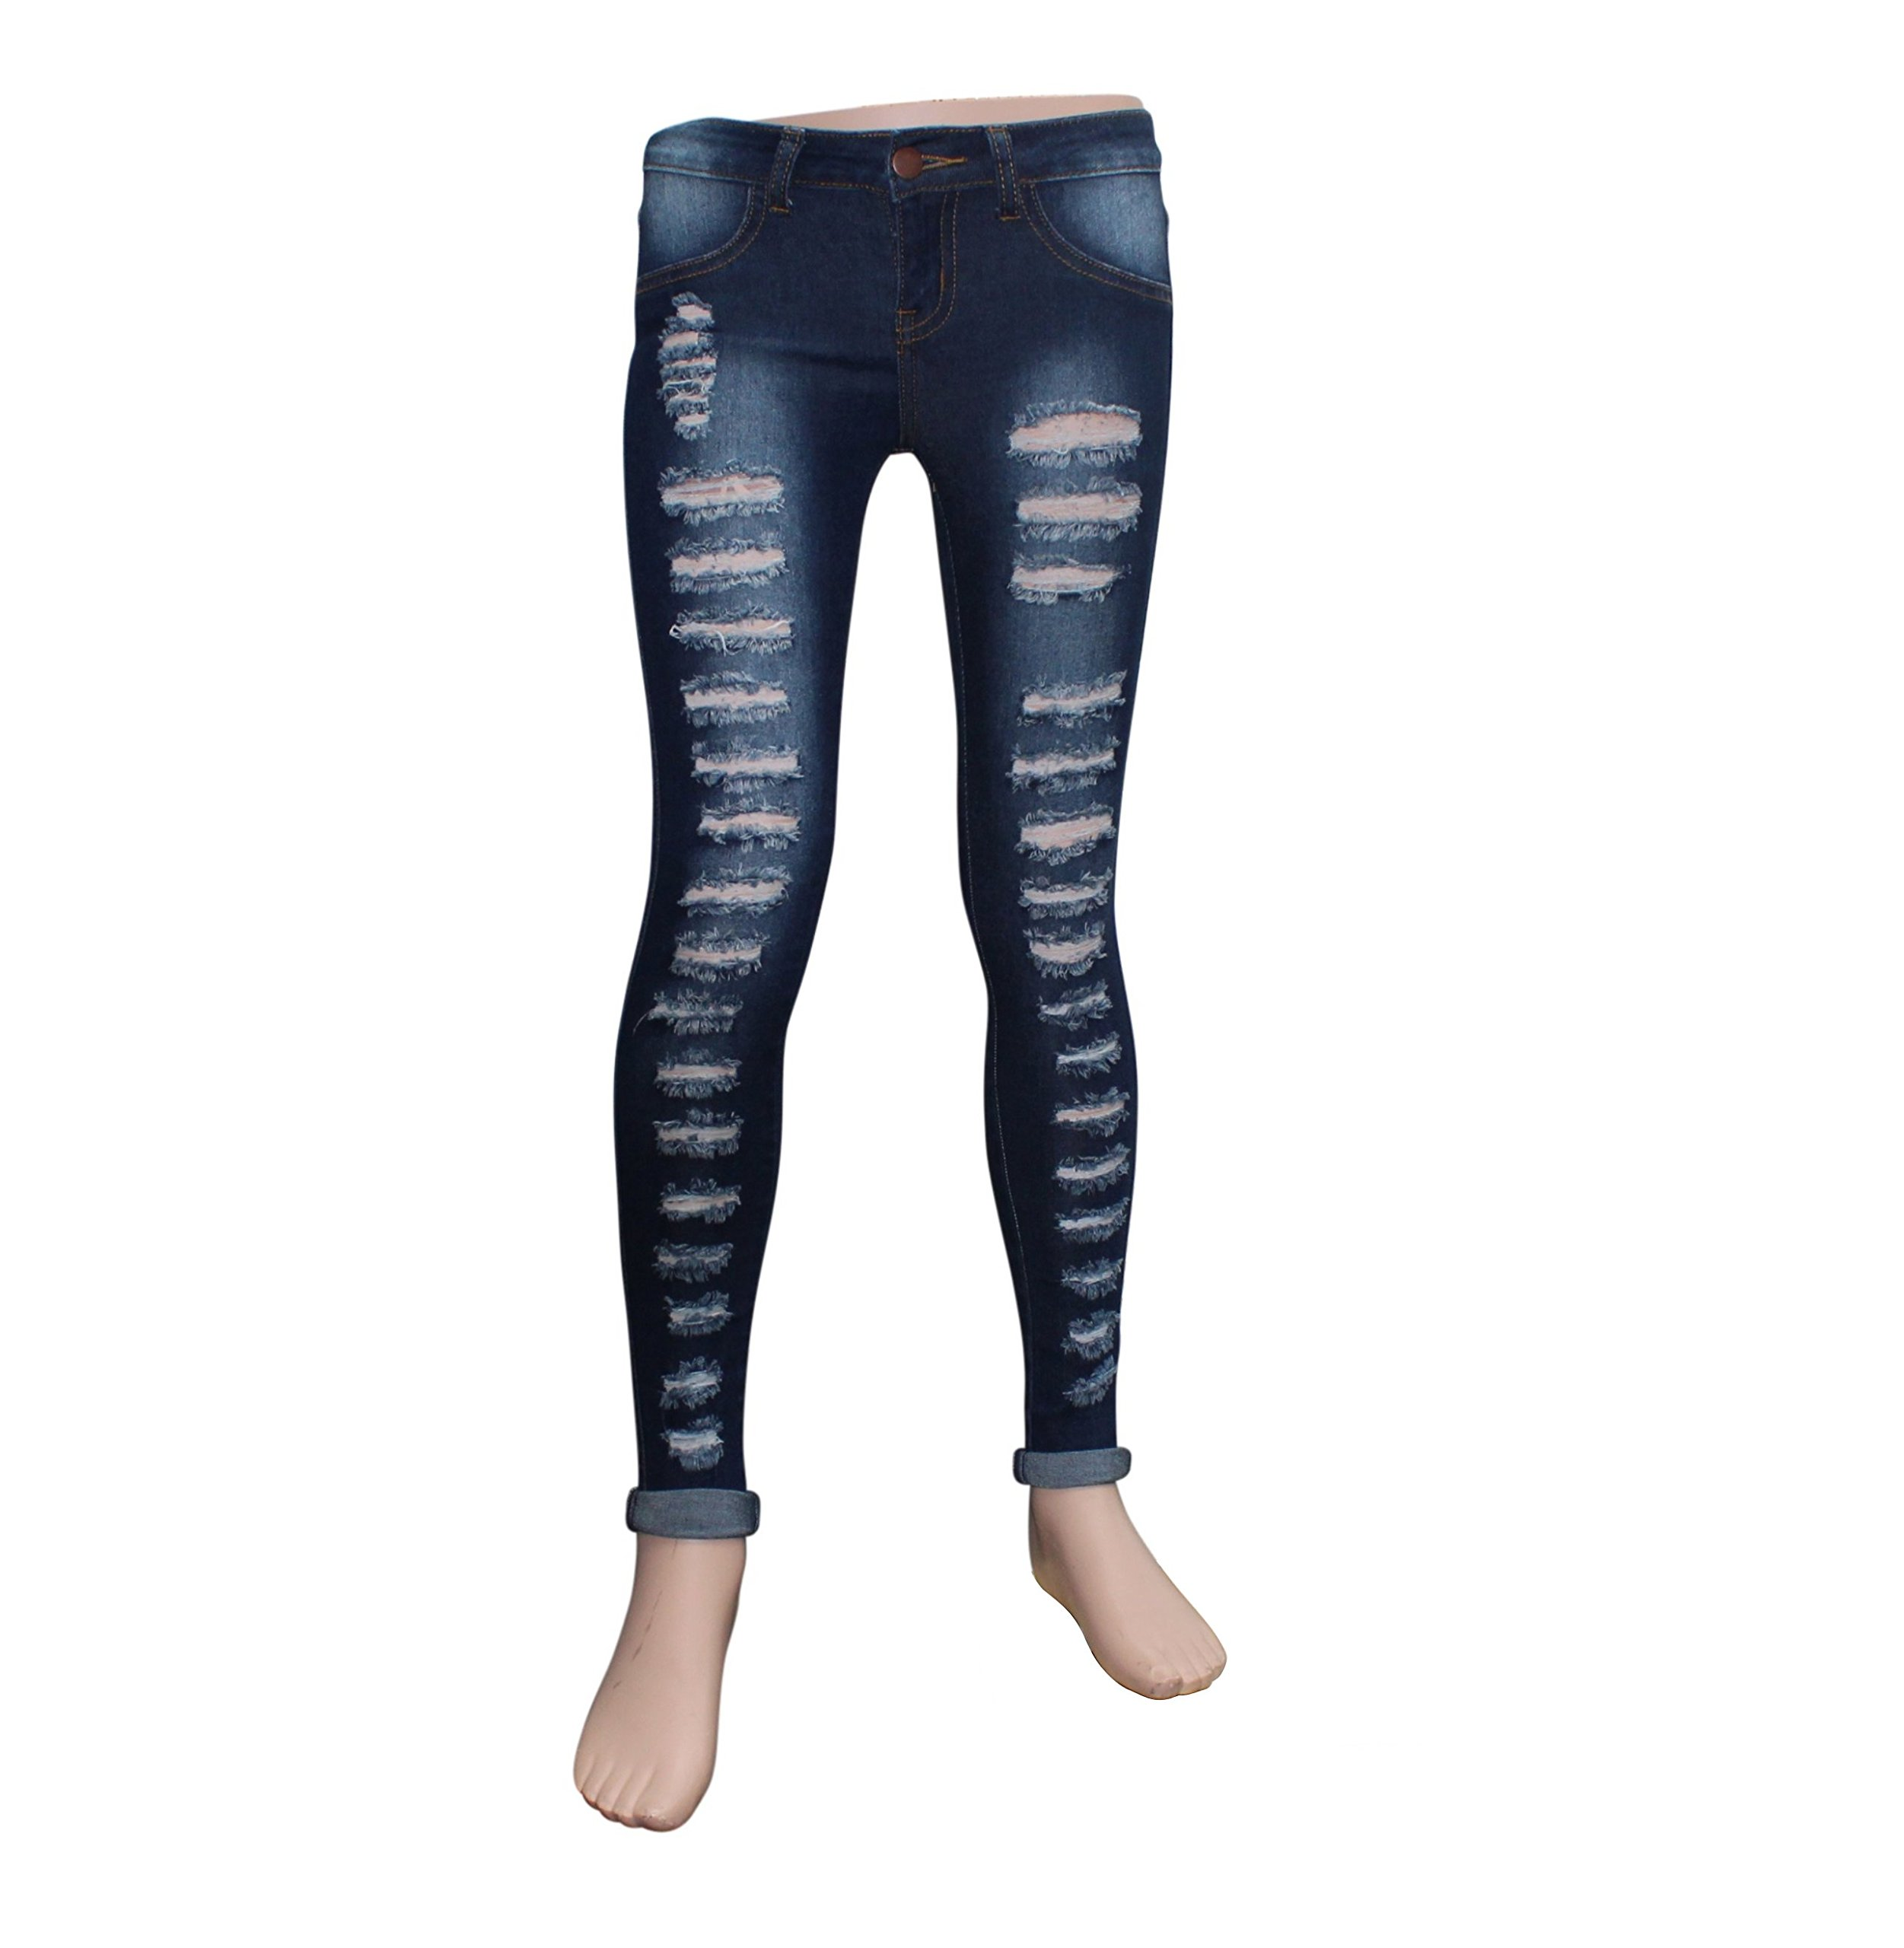 Teen G's Jeans and Twill for Girls by Skinny Jeans for Girls with Ripped Denim and Distressed Stretch Fabric Slim Fit Pants,kp33 (16, Black) by Teen G's (Image #3)